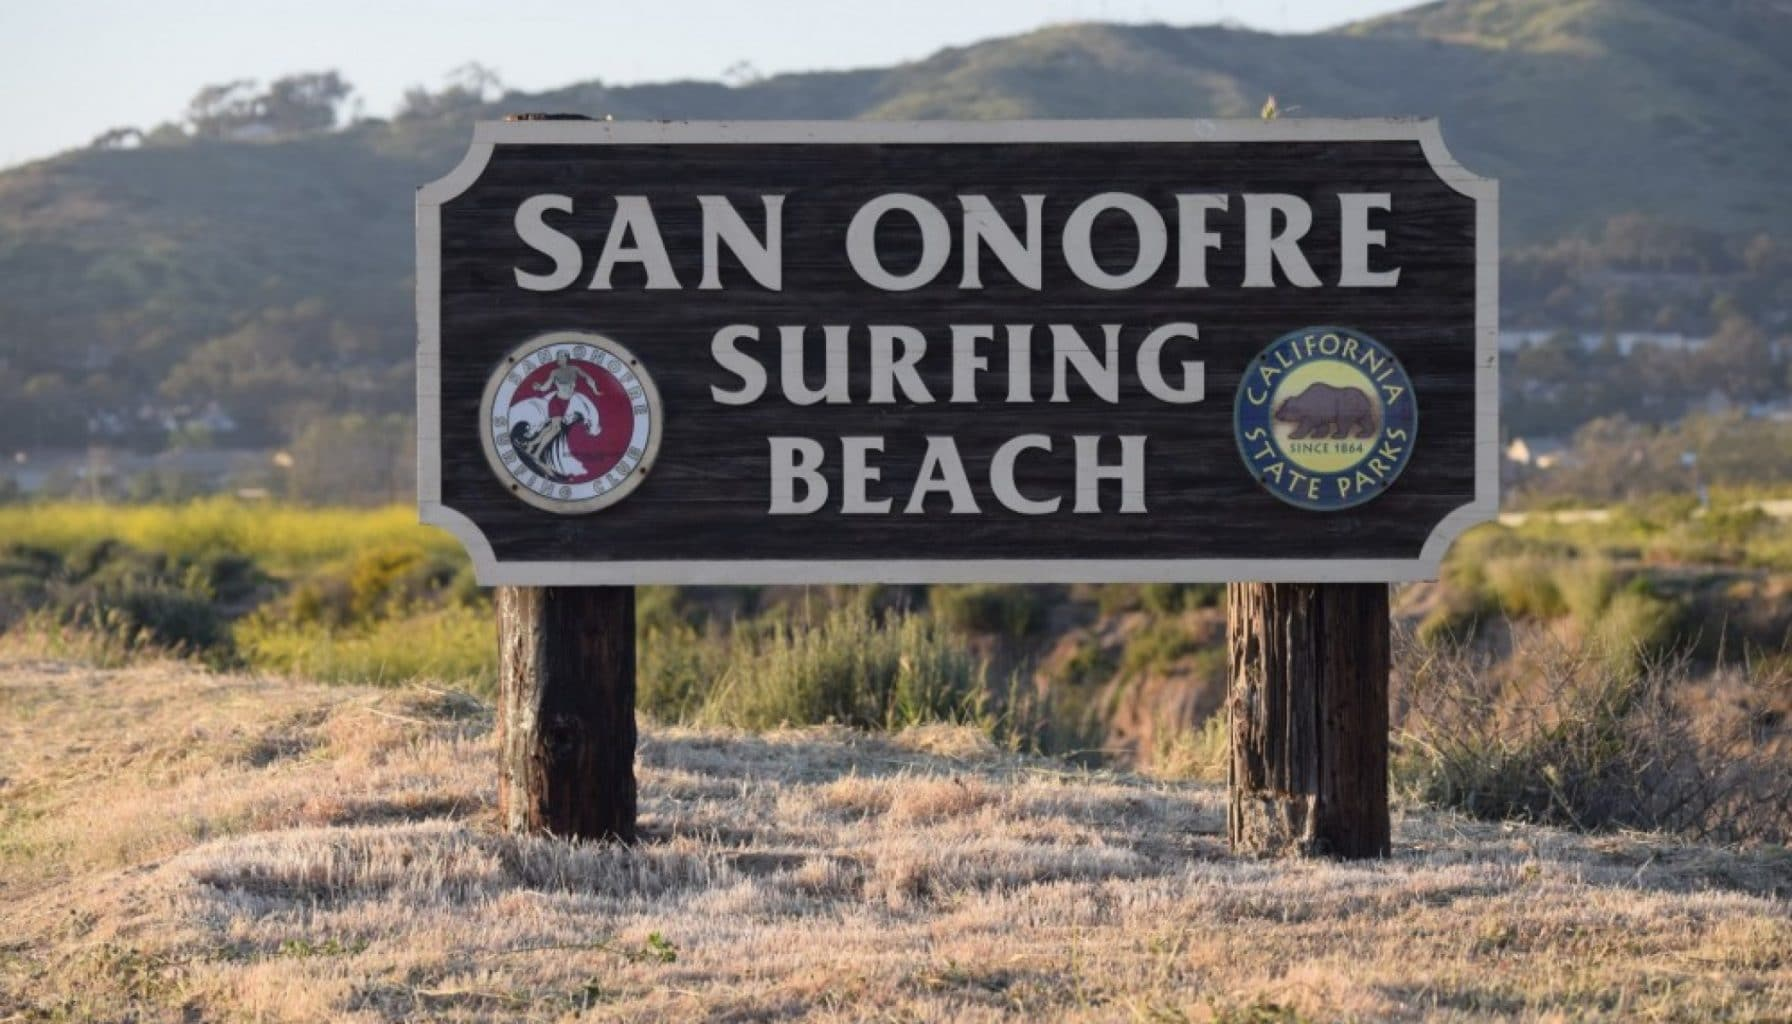 learn to surf in San Onofre